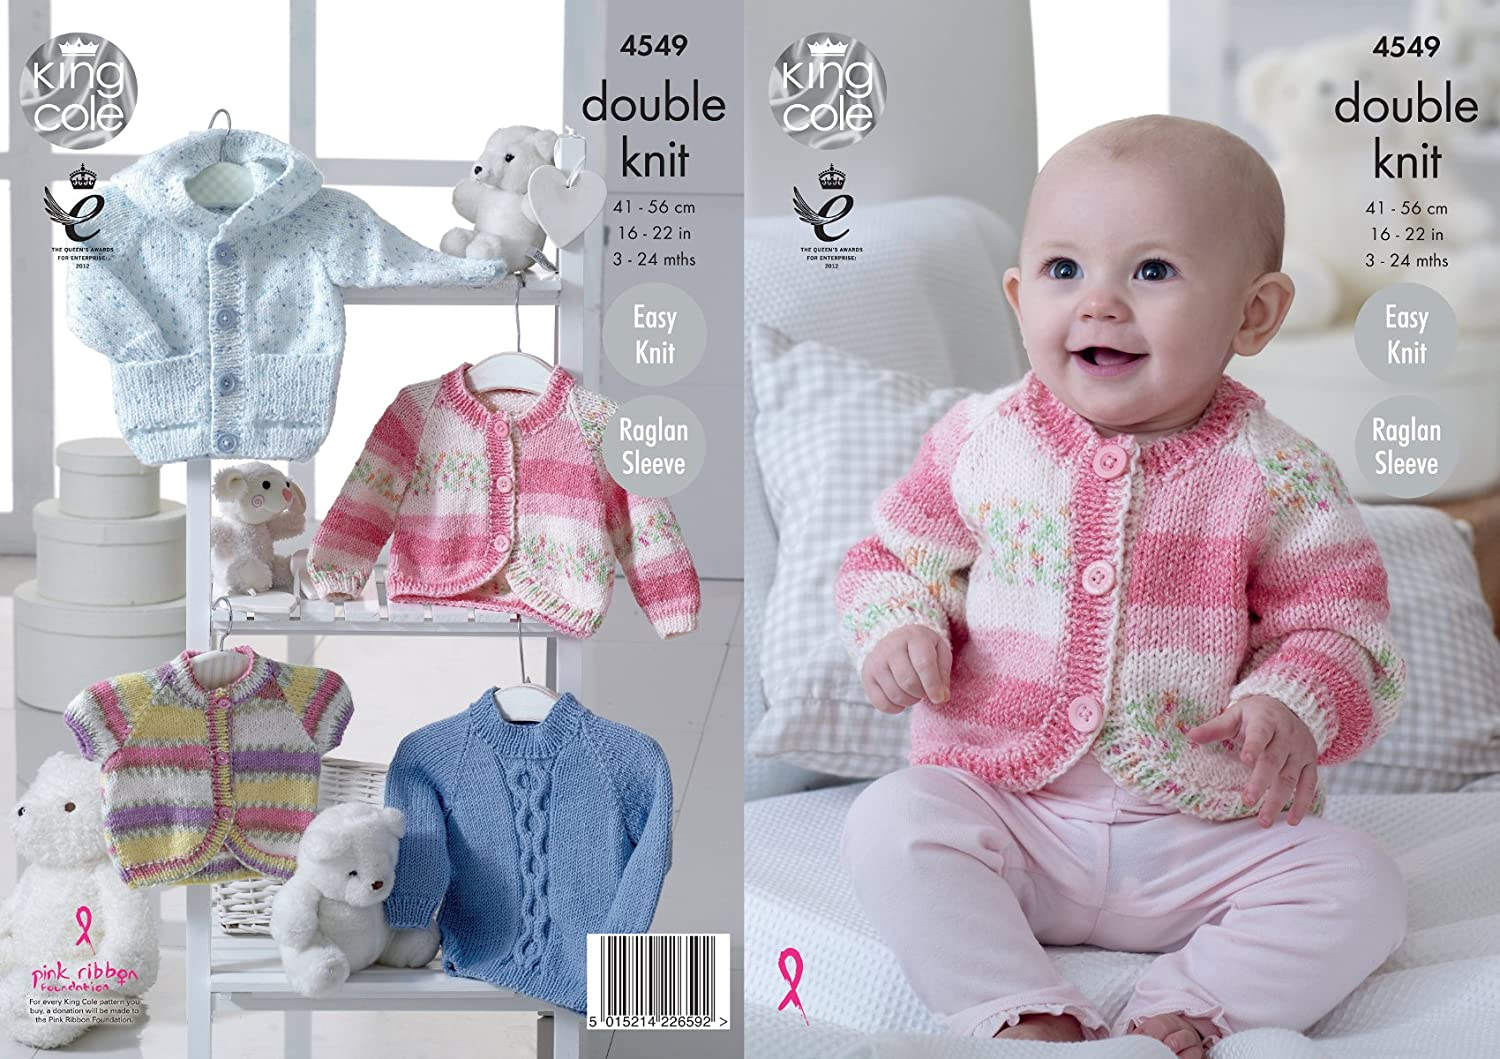 Amazon king cole baby double knitting pattern easy knit amazon king cole baby double knitting pattern easy knit raglan sleeve hoody cardigans sweater dk 4549 home kitchen bankloansurffo Image collections